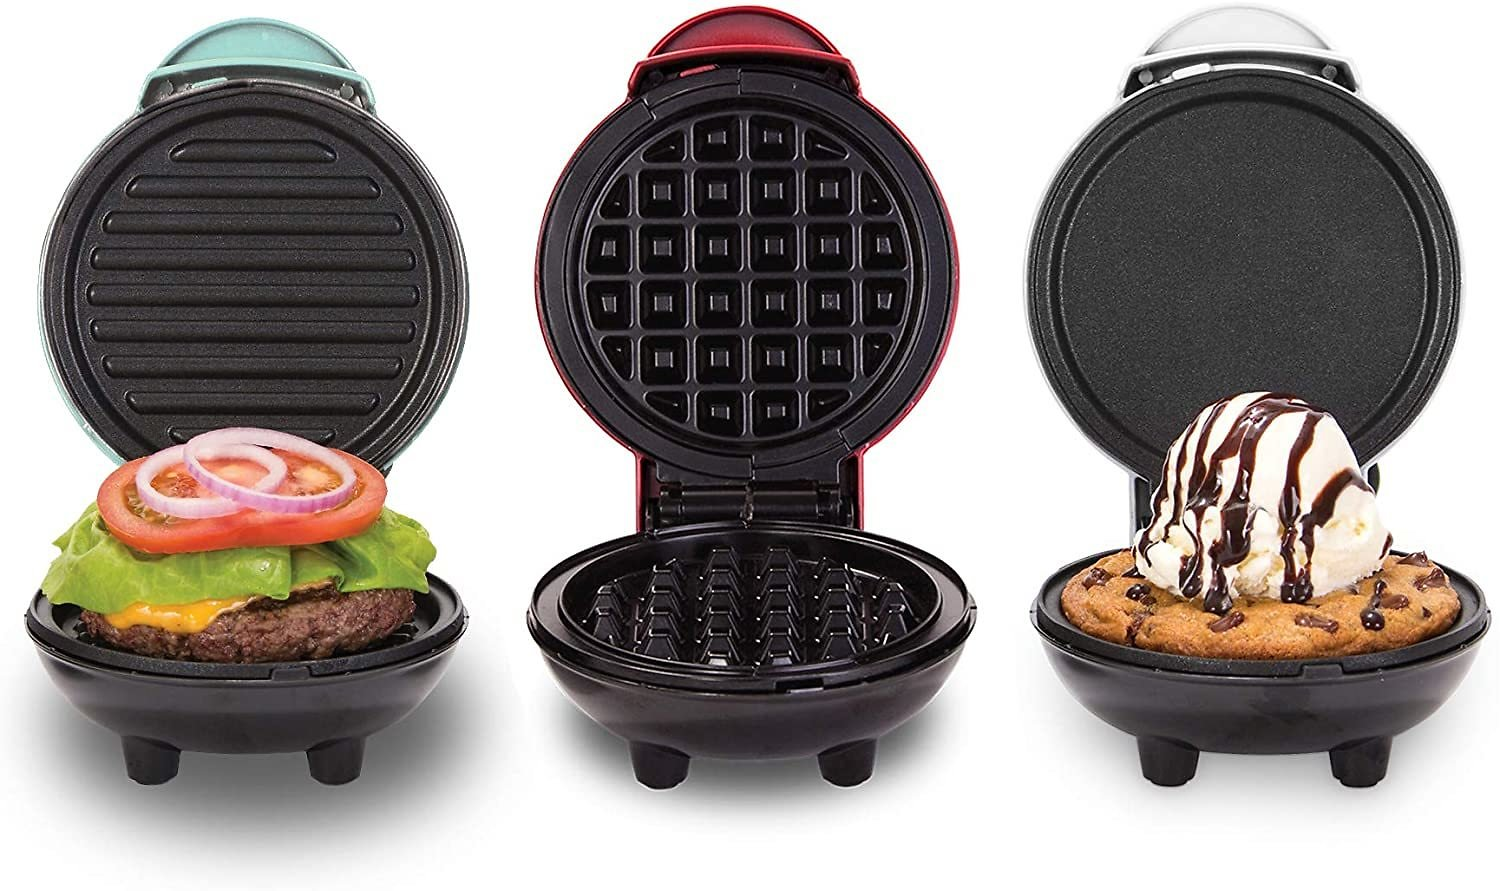 Dash DGMS03GBCL Mini Maker Grill, Griddle + Waffle Iron, 3 Pack, Red/Aqua/White